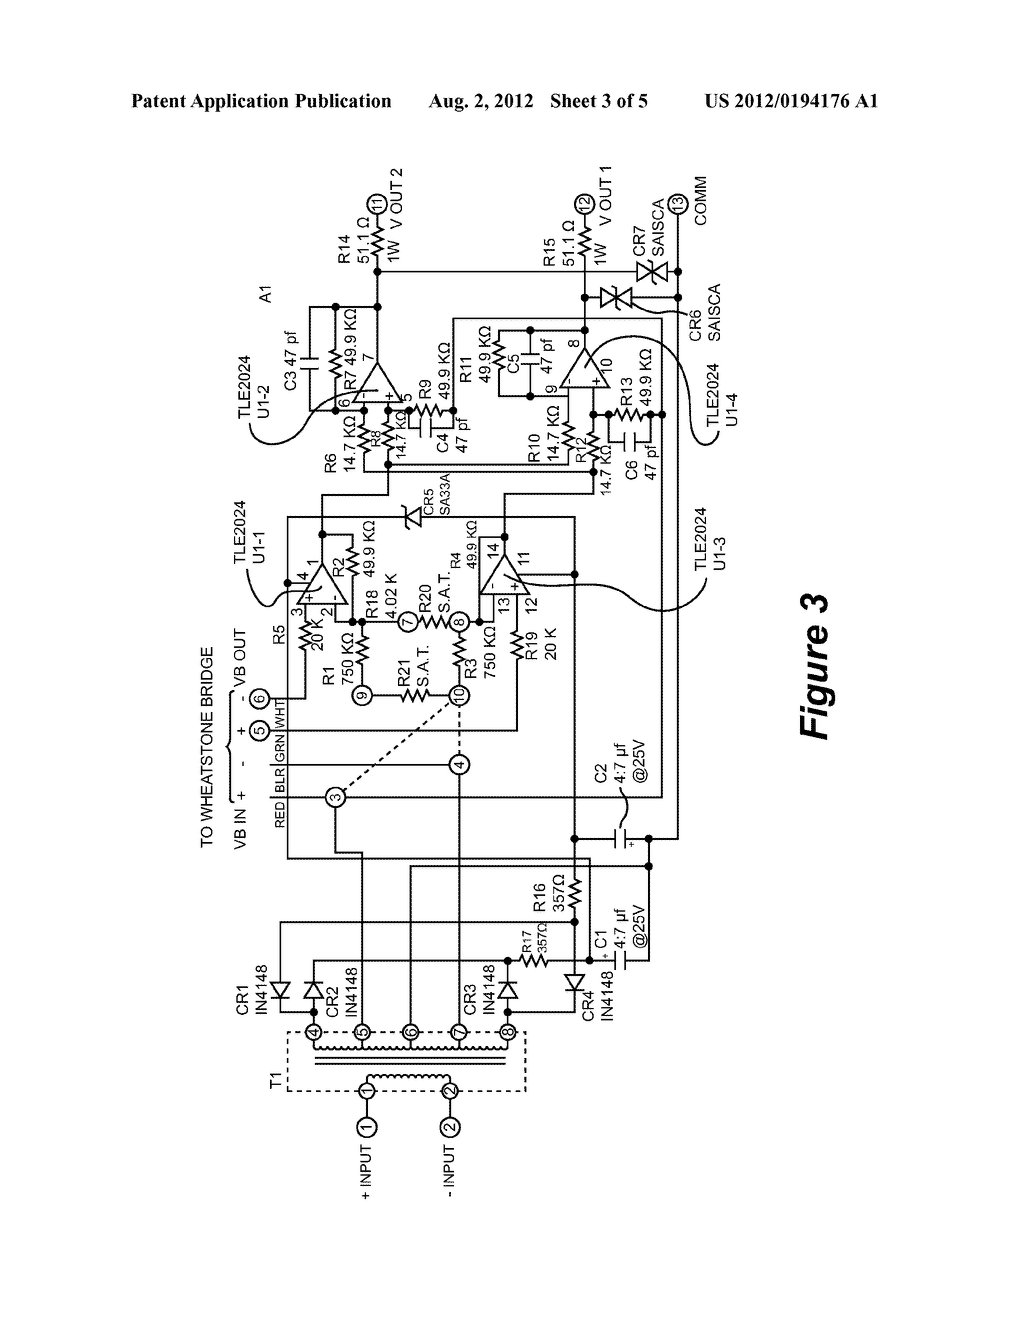 hight resolution of electronic interface for lvdt type pressure transducers using piezoresistive sensors diagram schematic and image 04